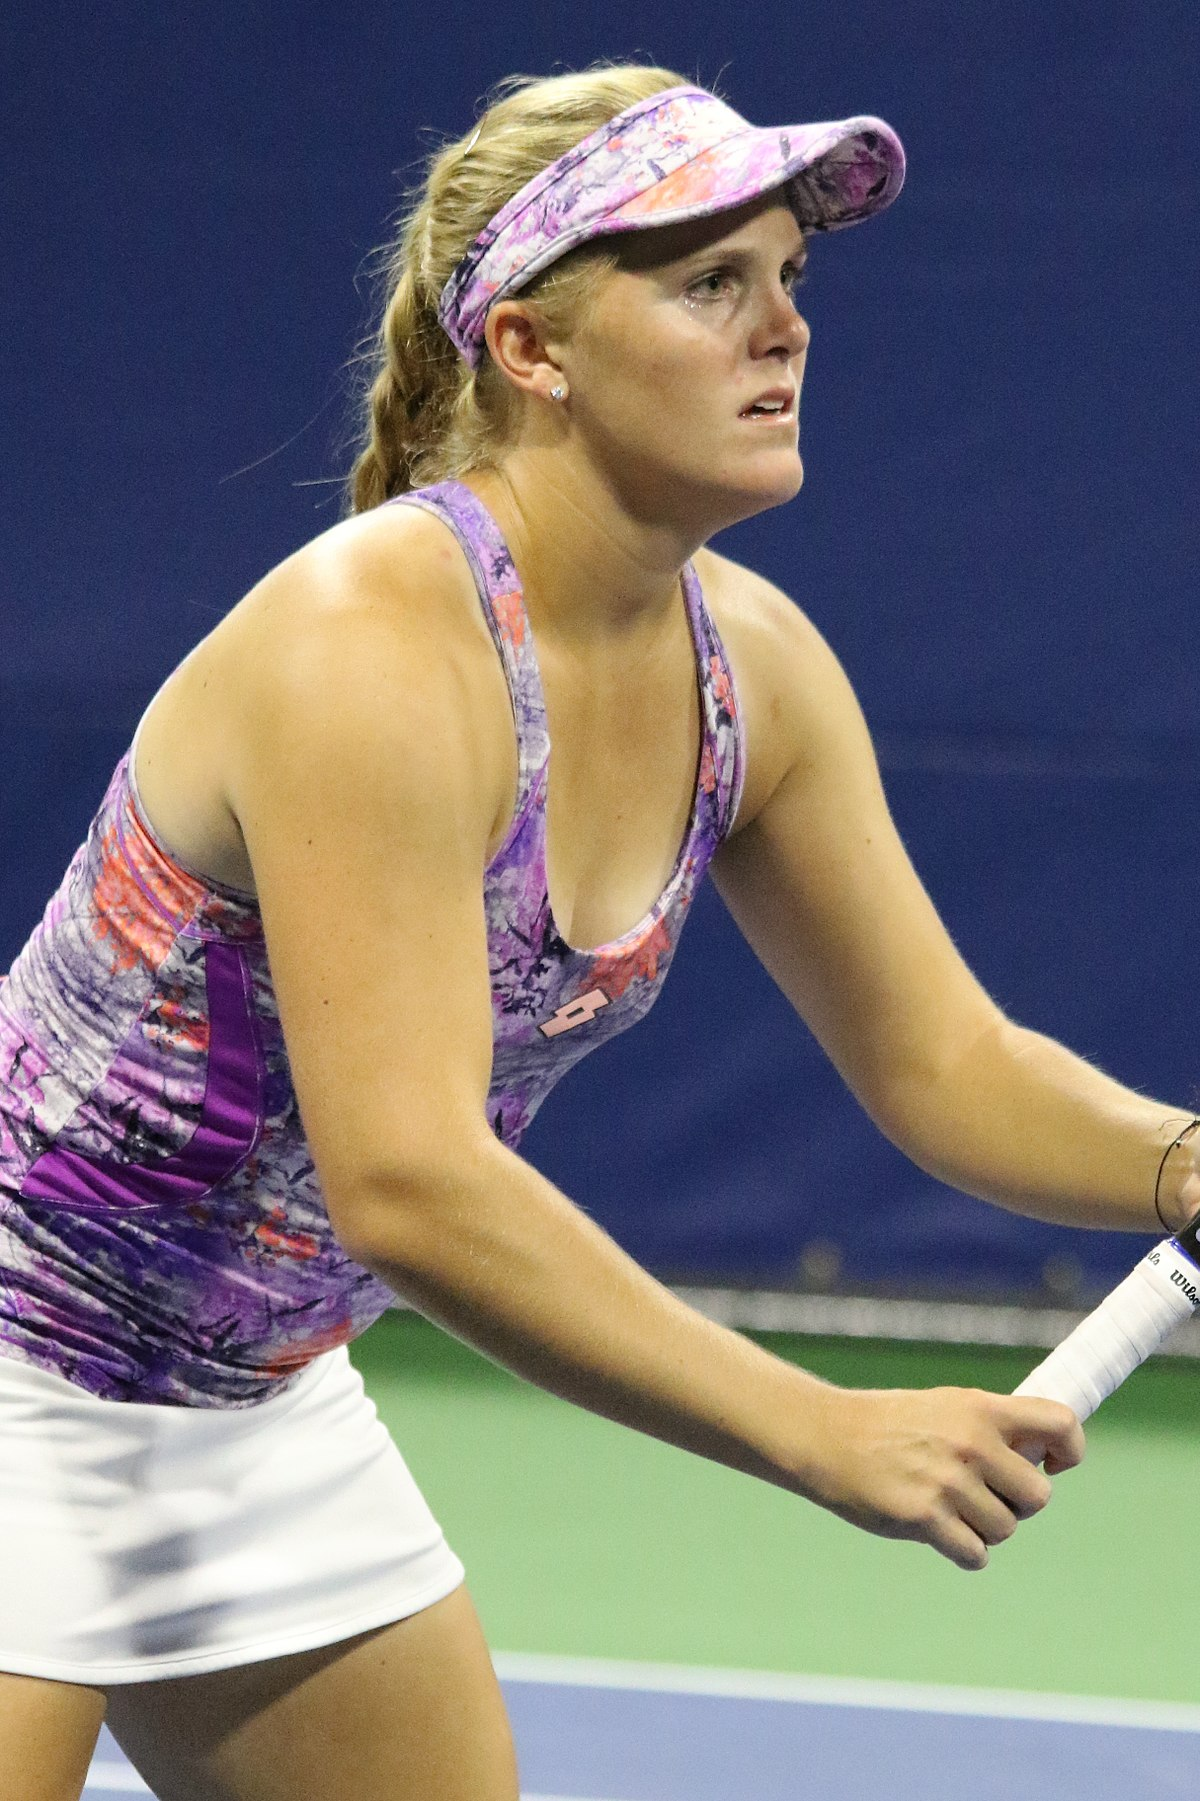 Main article: List of female tennis players Main article: List of female tennis players new pics